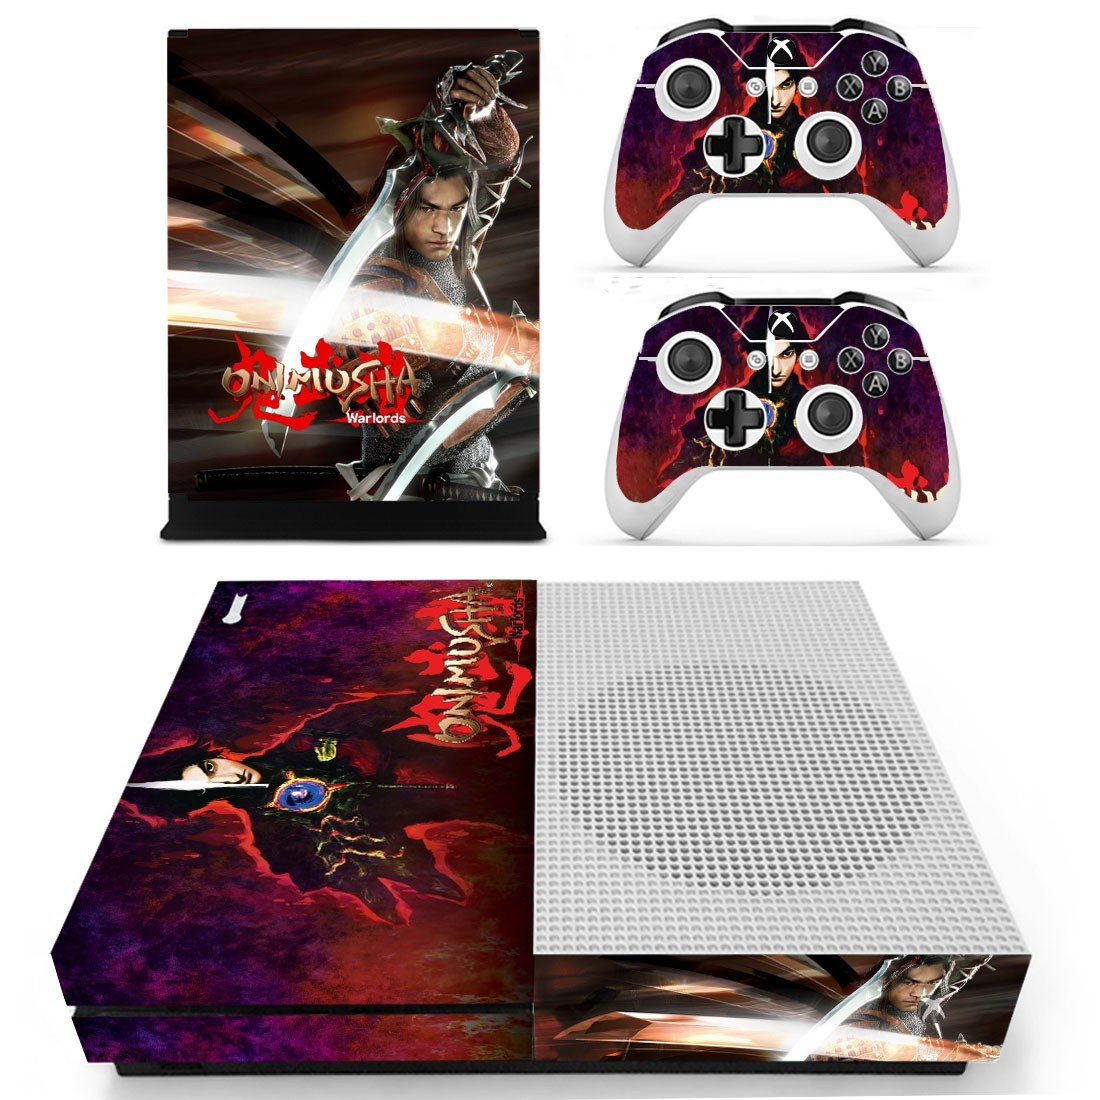 Onimusha decal skin sticker for Xbox One S console and controllers